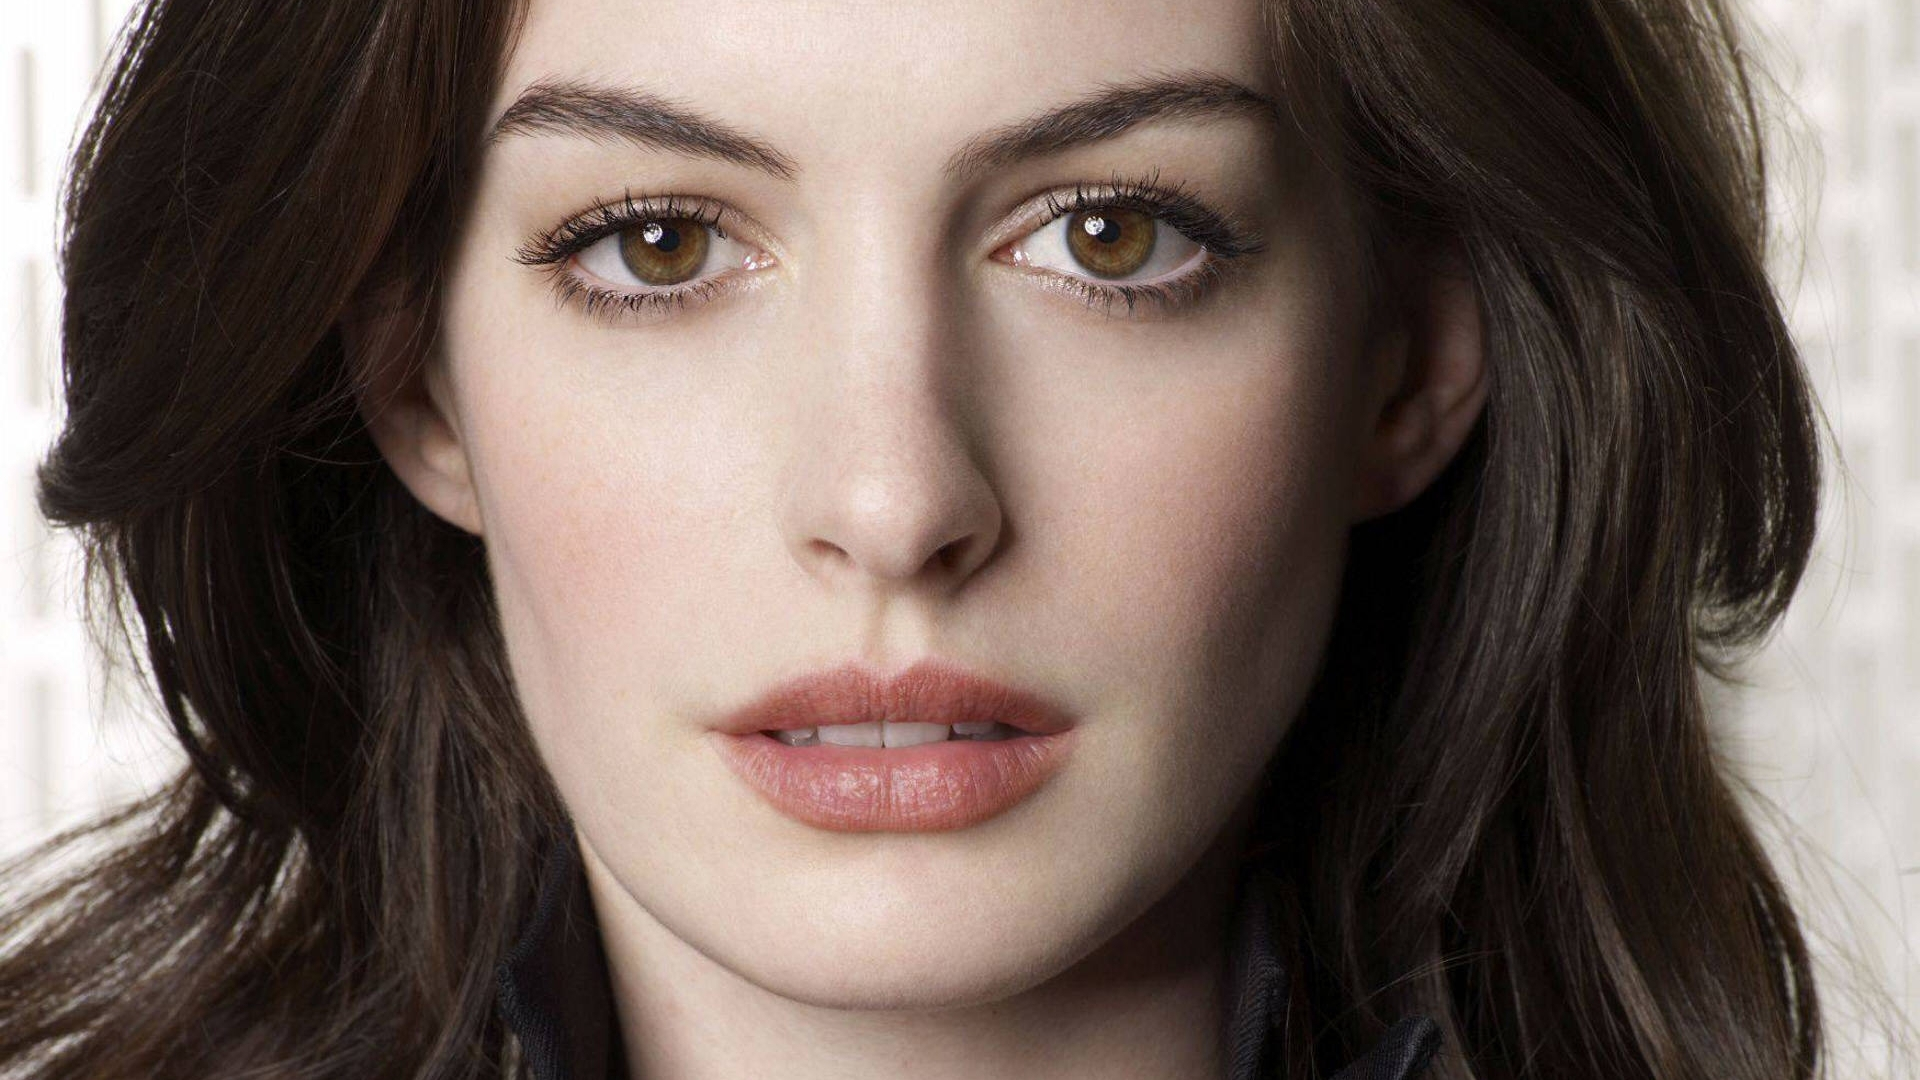 Anne Hathaway Face Hd